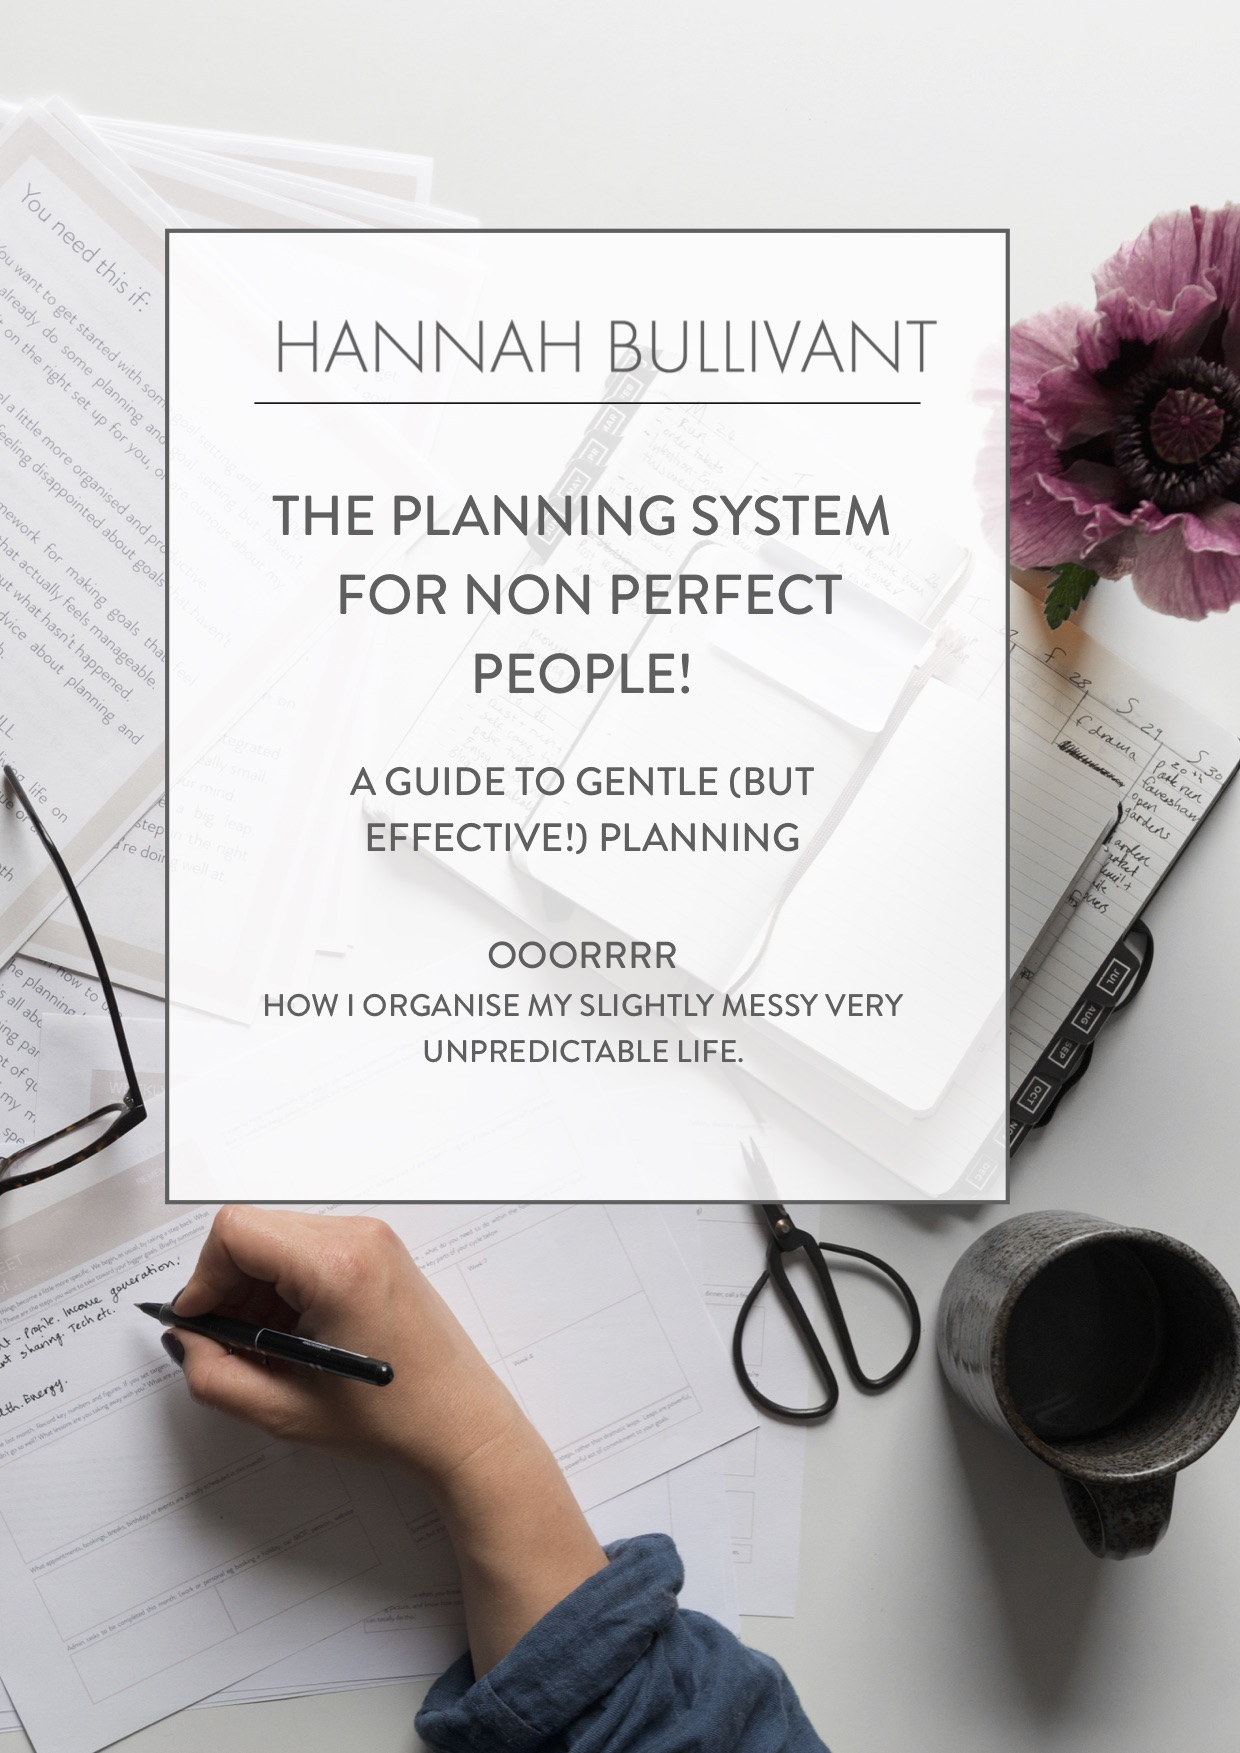 Planning worksheets, the planning system for non-perfect people, a guide to gentle planning, annual planning worksheet, quarterly planning worksheet, monthly planning worksheet, weekly planning worksheet, How I organise my messy very unpredictable life